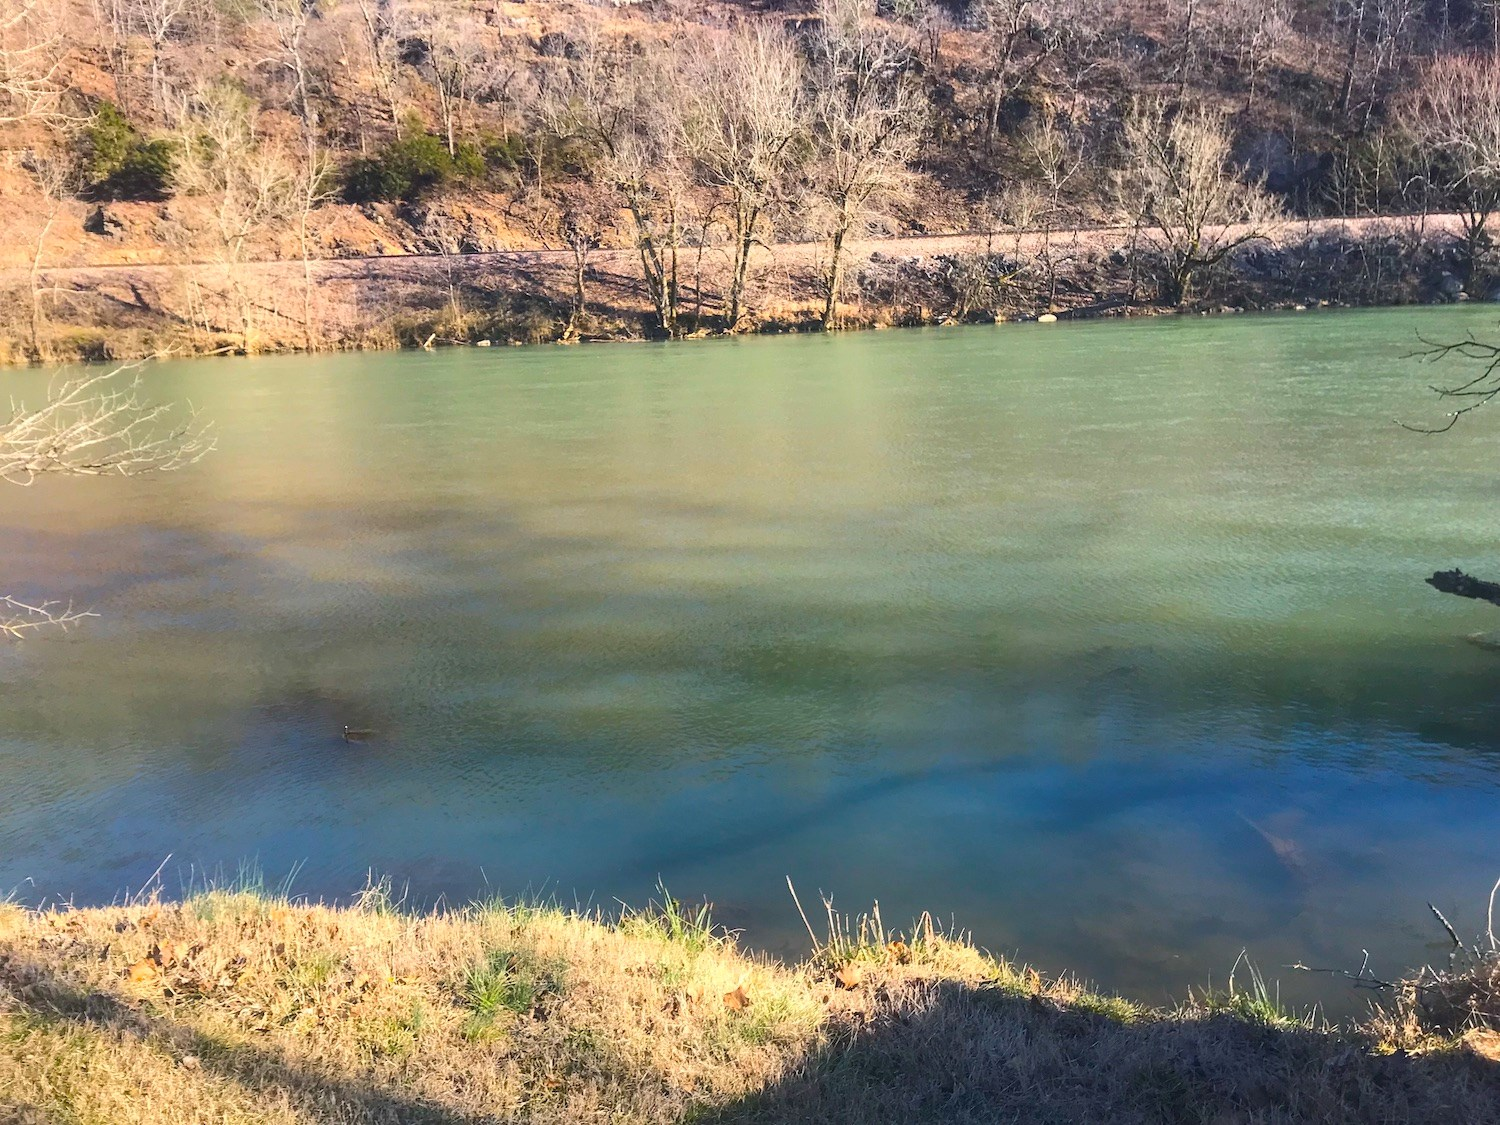 VACANT RIVERFRONT LAND FOR SALE IN ARKANSAS